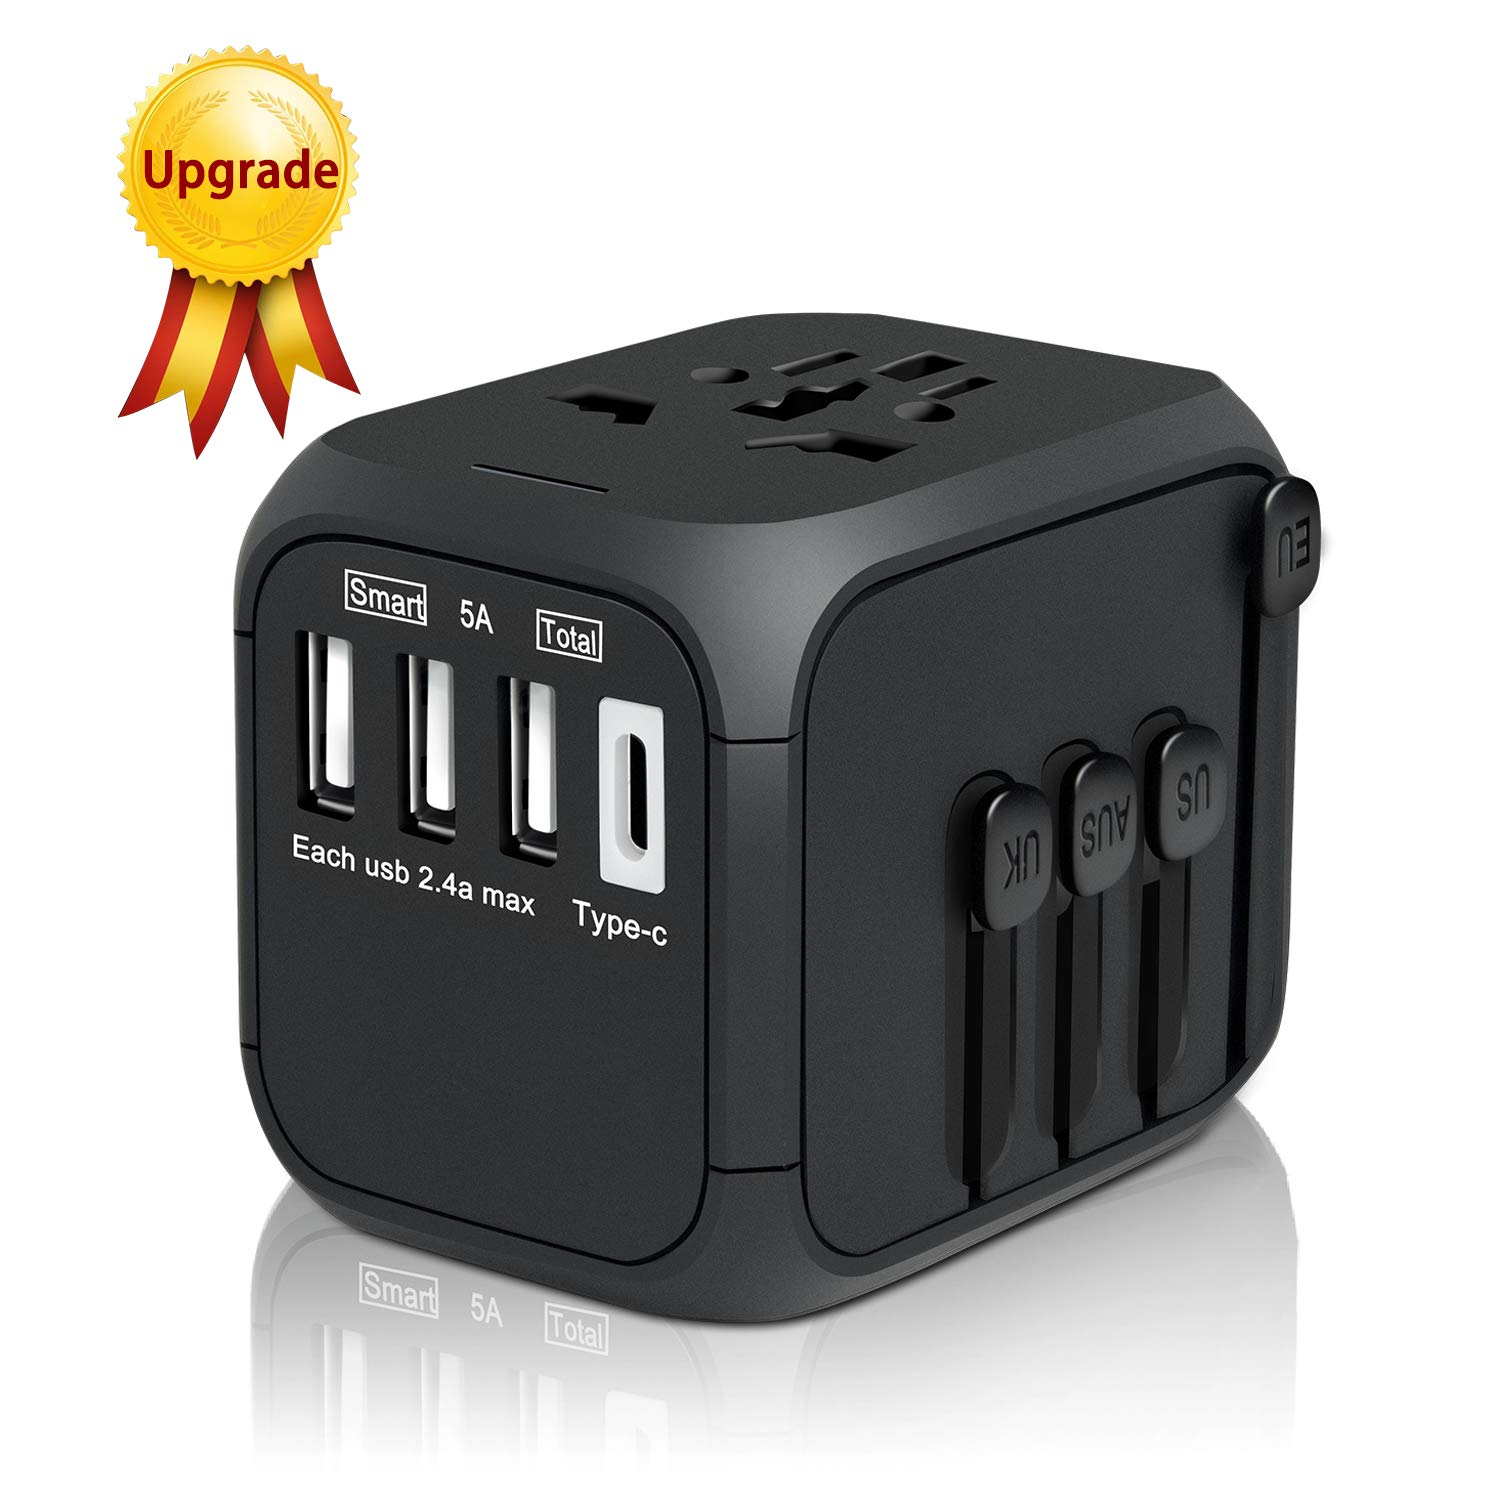 International Power Adapter, Upgrade Universal Travel Adapter with Auto Resetting Fuse Adapters 4 USB and Type C Ports, Europe Multifunctional Wall Charger for UK, EU, AU, Asia Covers 200+Countries Haozi 4350281072